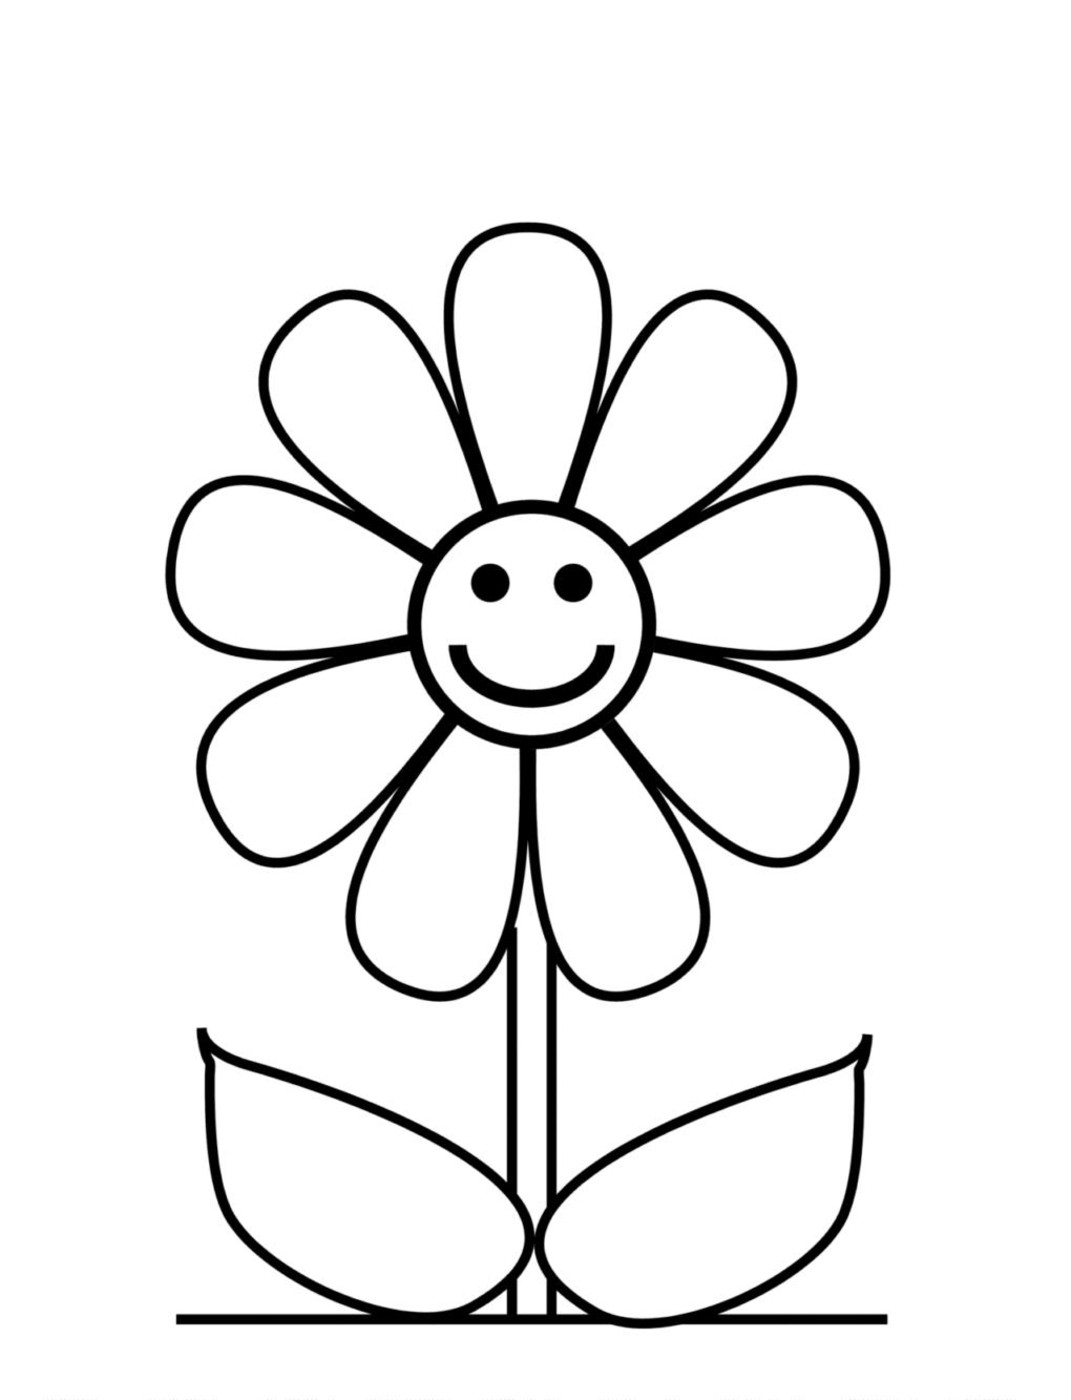 Free Flower Outline For Kids, Download Free Clip Art, Free.